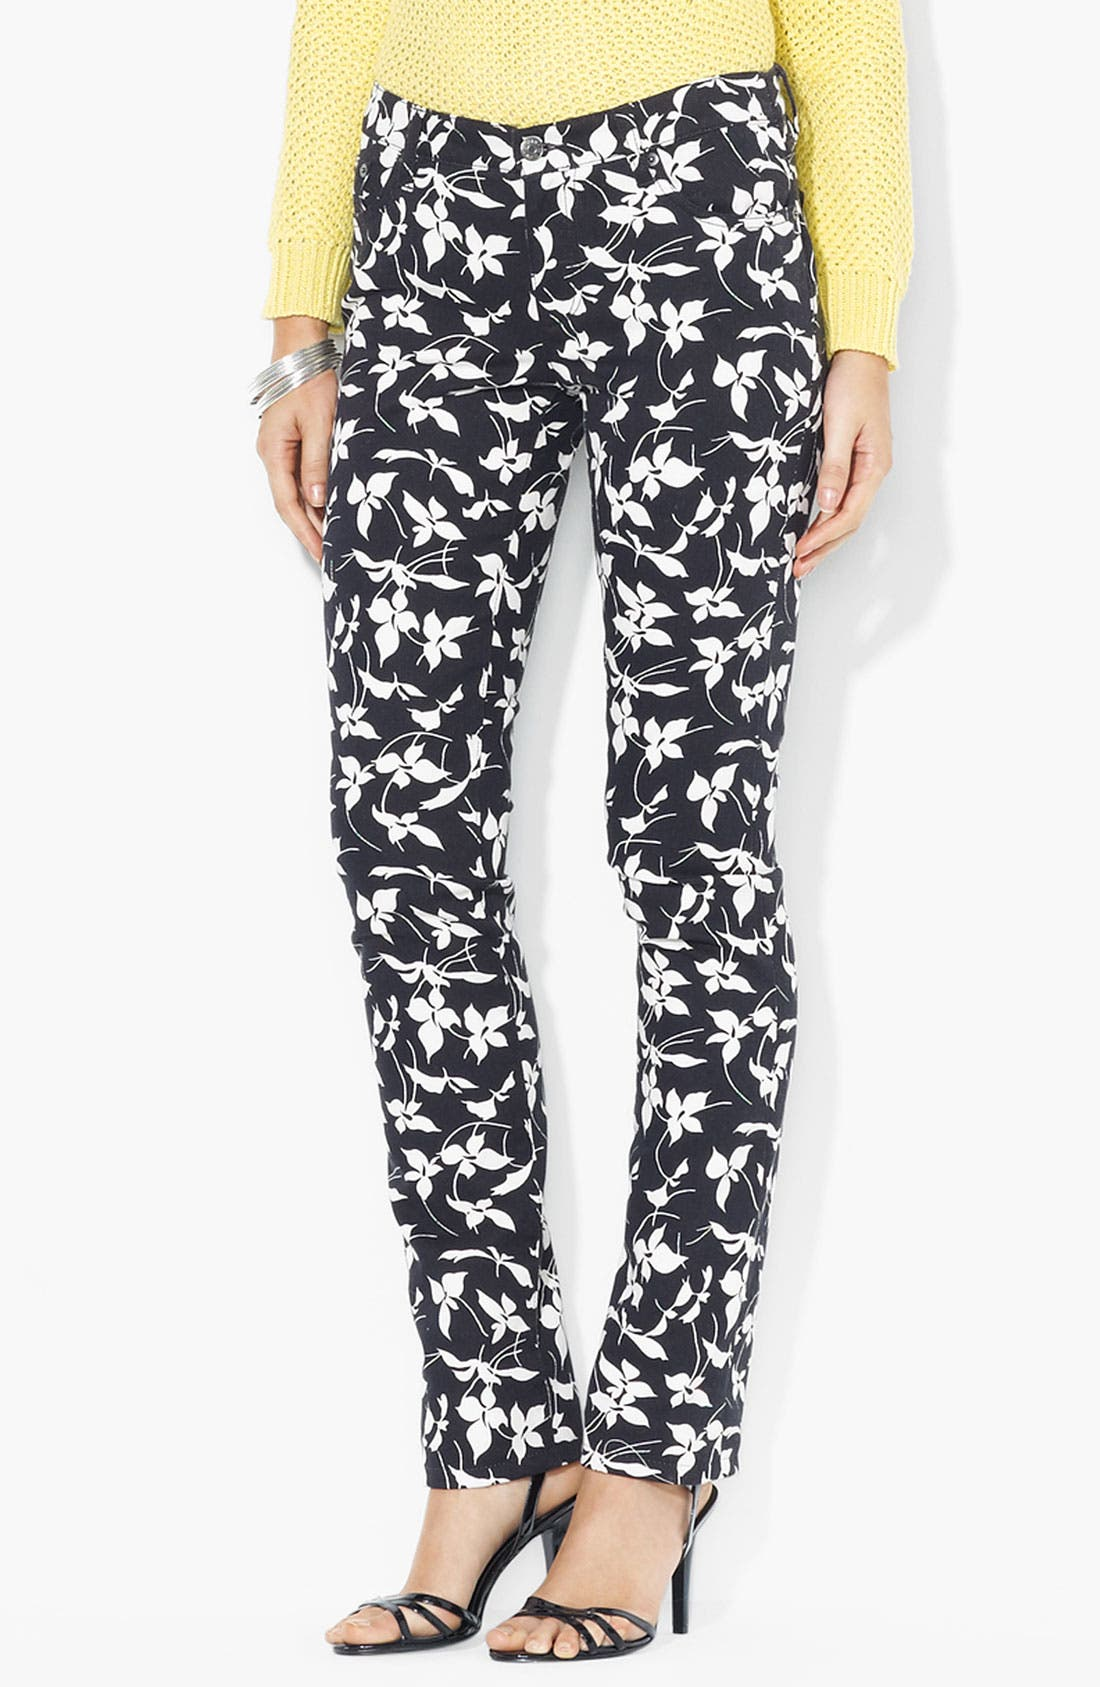 Alternate Image 1 Selected - Lauren Ralph Lauren Straight Leg Ankle Pants (Petite) (Online Only)